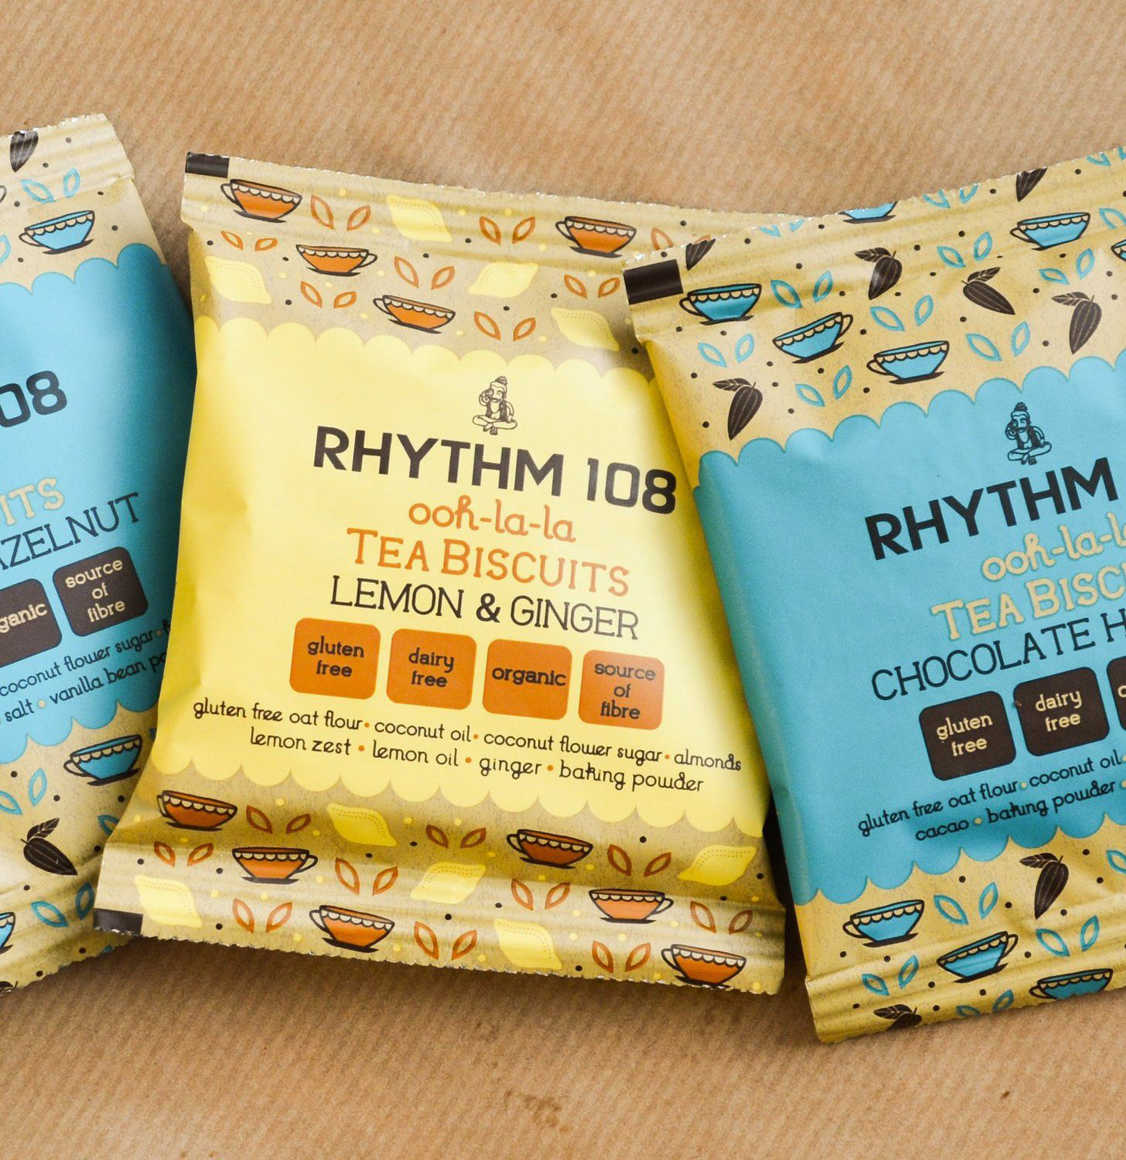 Rhythm 108 Lemon and Ginger Biscuits 5 x 33g